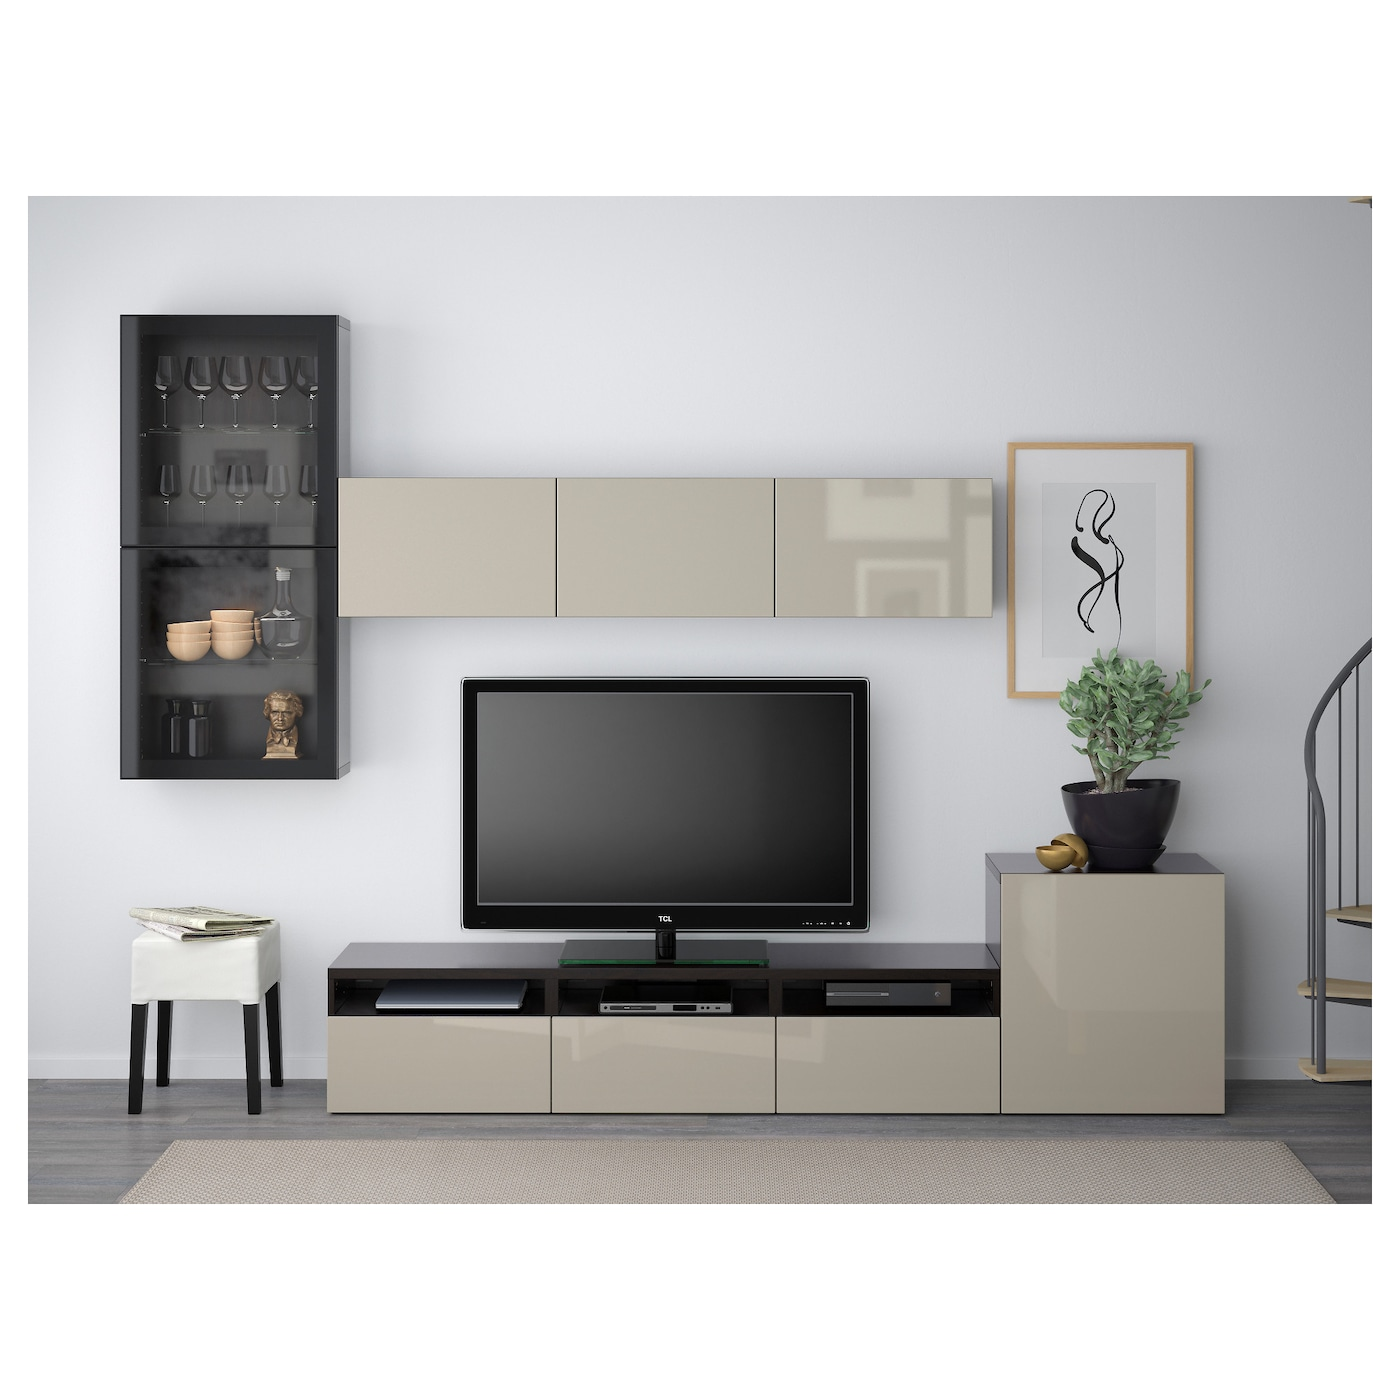 best tv storage combination glass doors black brown selsviken high gloss beige clear glass 300. Black Bedroom Furniture Sets. Home Design Ideas